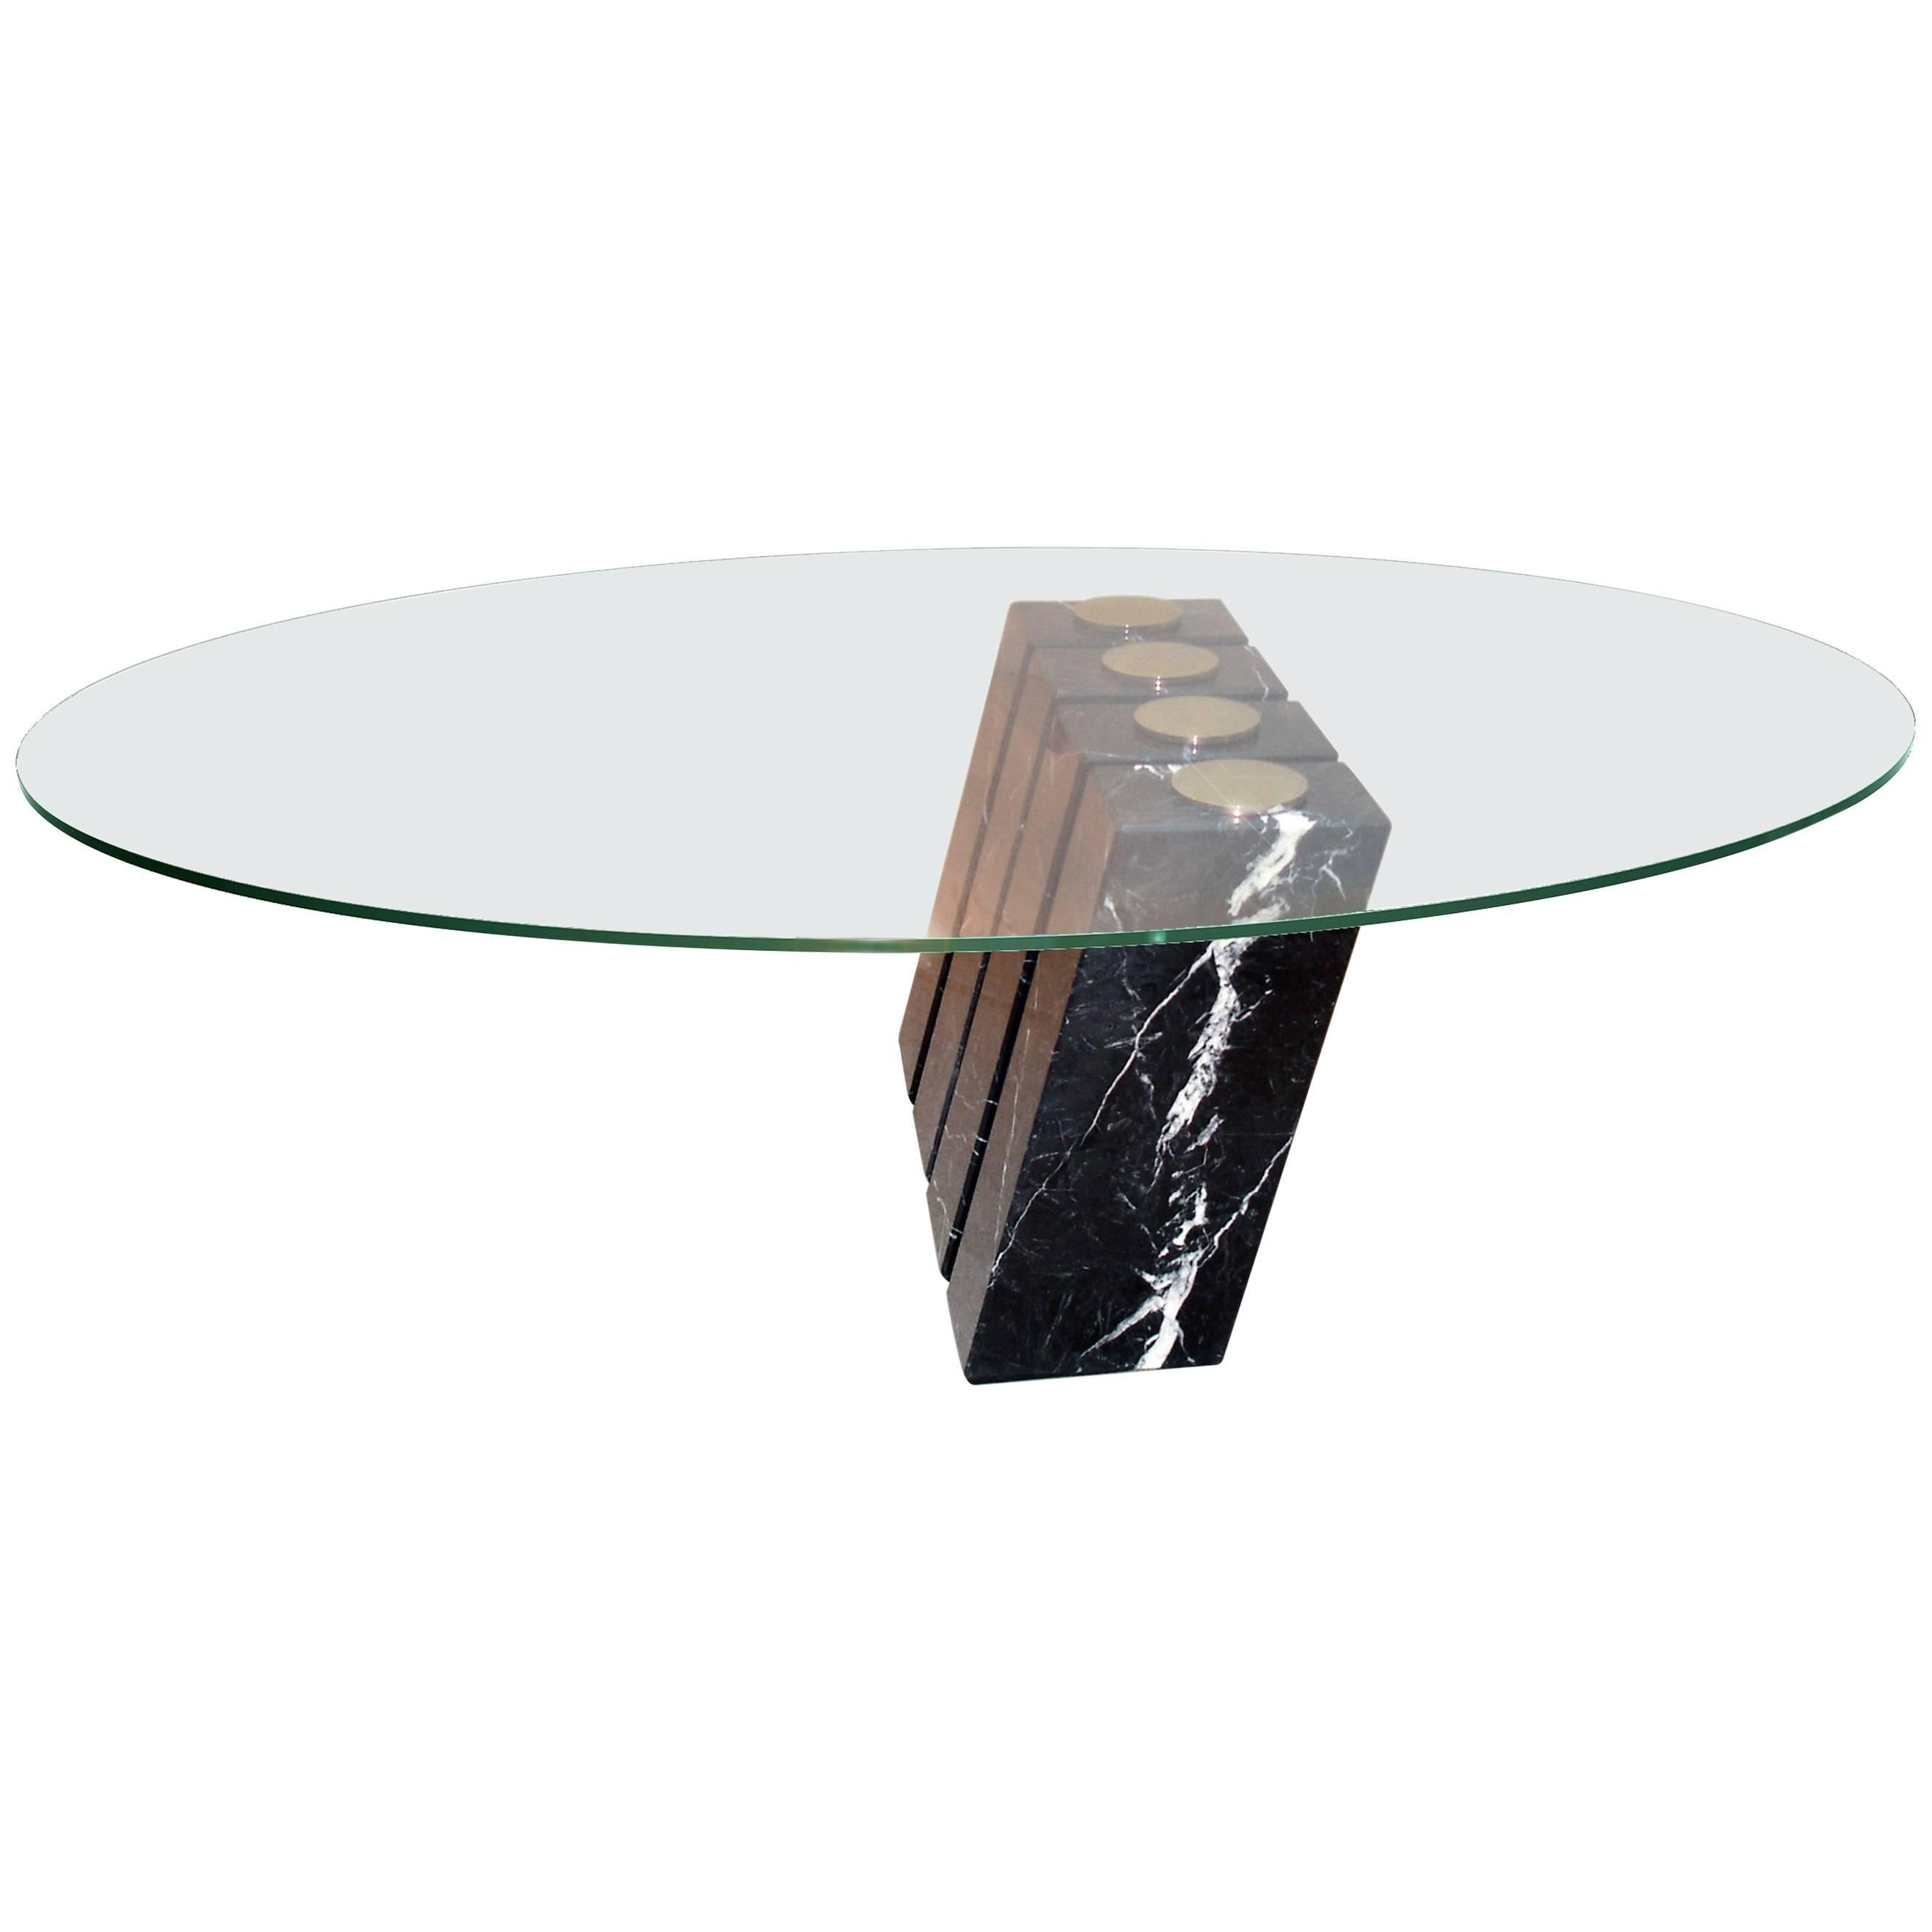 Marble, Glass And Steel Table U0027Etheru0027 N°1/8 By Vincent